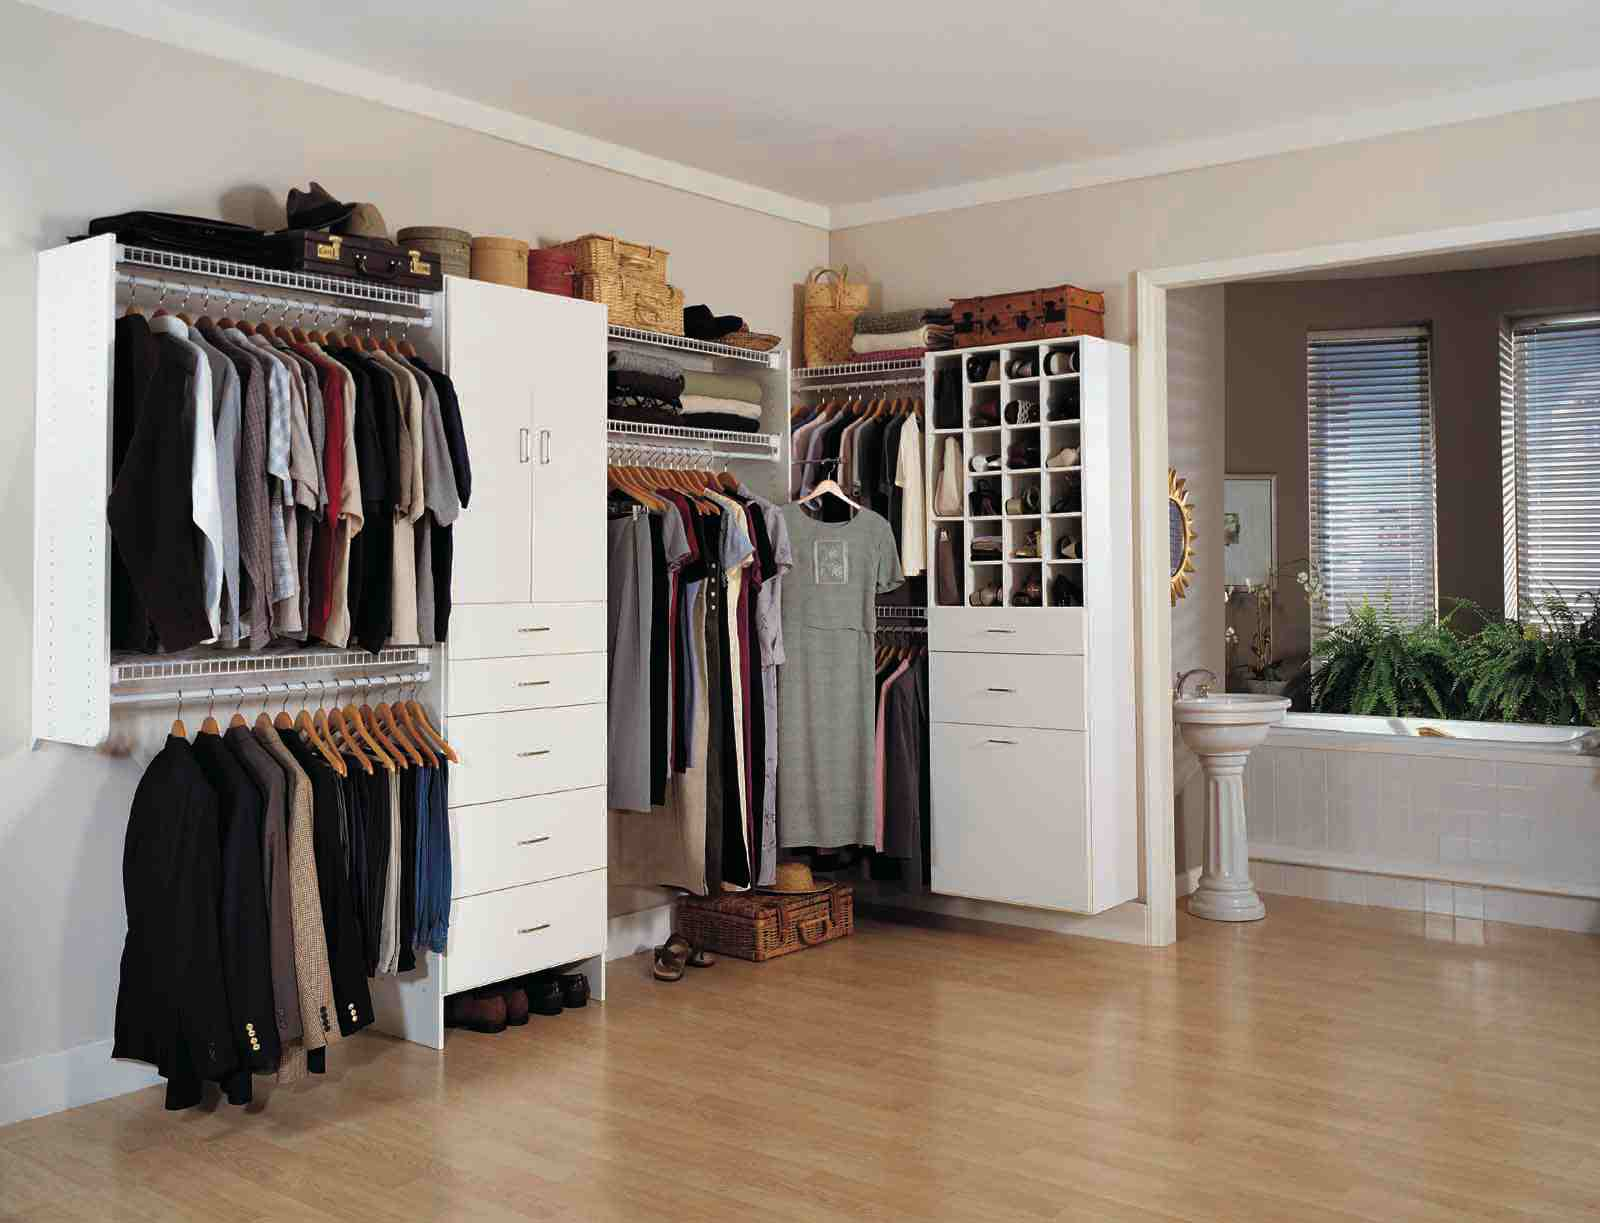 Modelos de closets walk in closet luxury interior design for Modelos de walk in closet